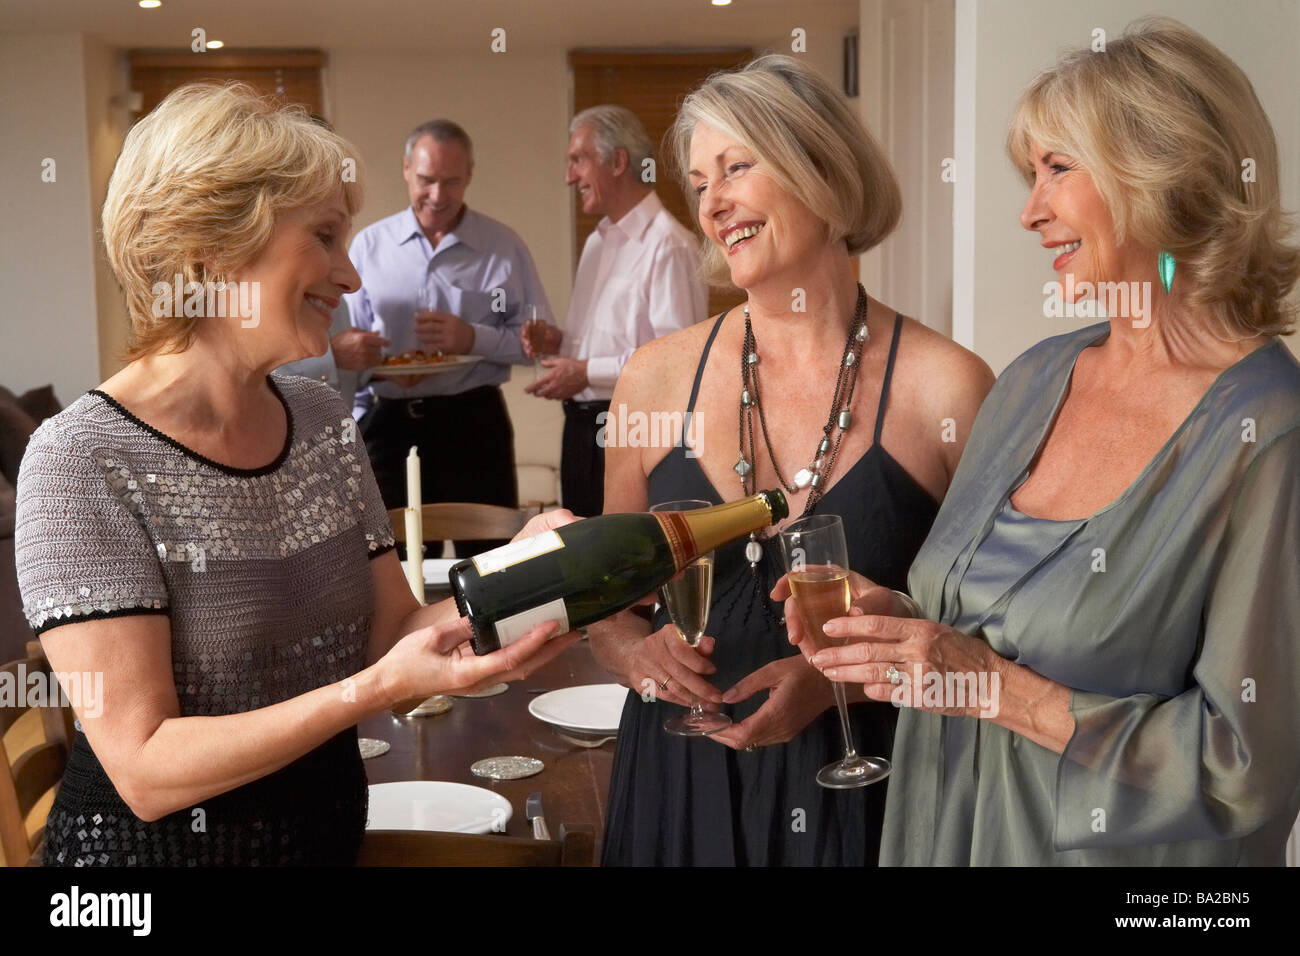 Woman Serving Champagne To Her Guests At A Dinner Party - Stock Image